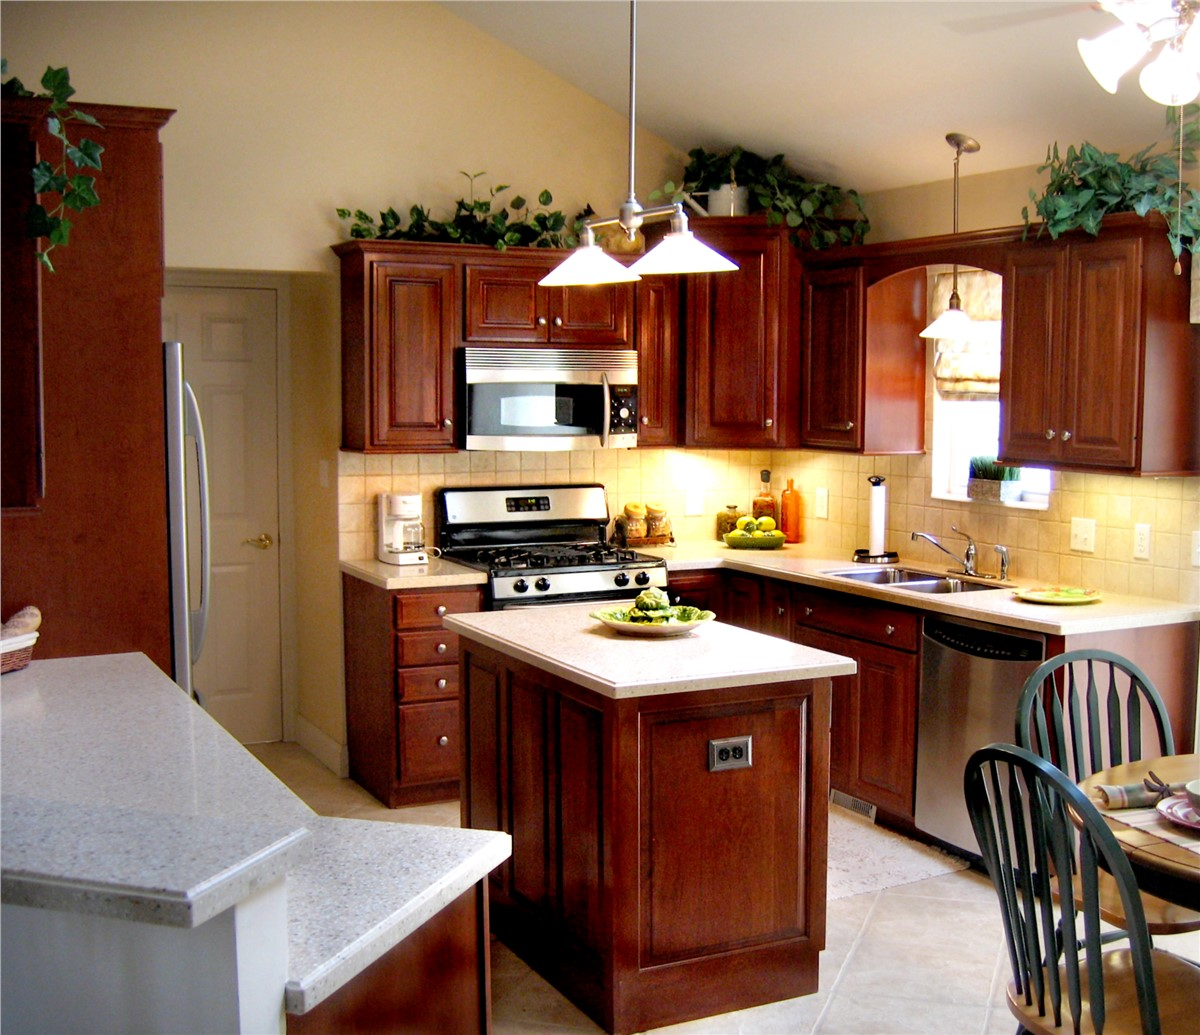 Affordable Kitchen Cabinet Updates: Cabinet Refinishing Company